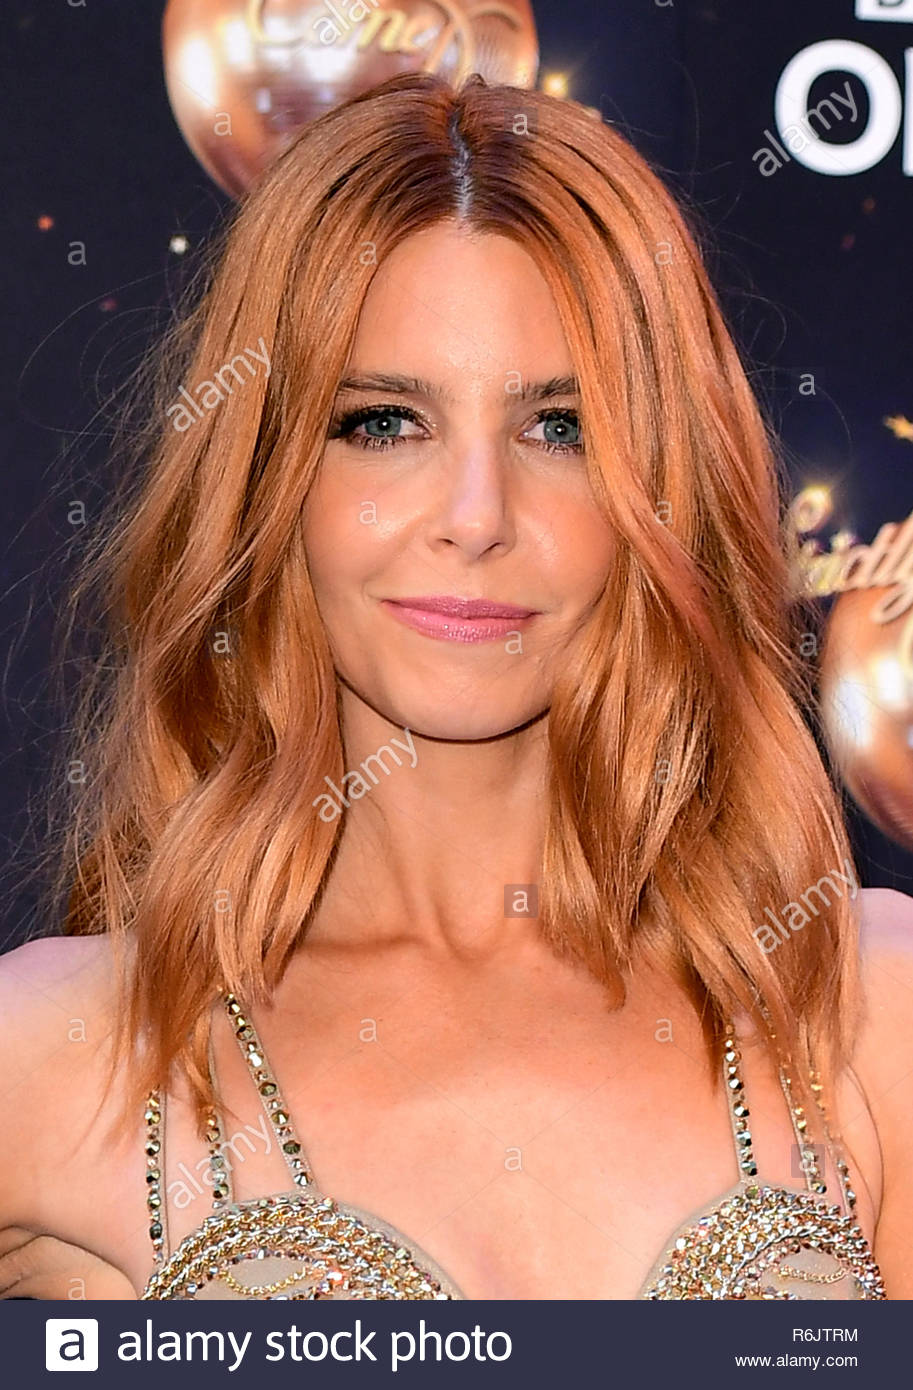 "File photo dated 27/08/18 of Strictly Come Dancing star Stacey Dooley, who has said her performance on last week's show left friends and family at home ""sobbing in the living room"". - Stock Image"